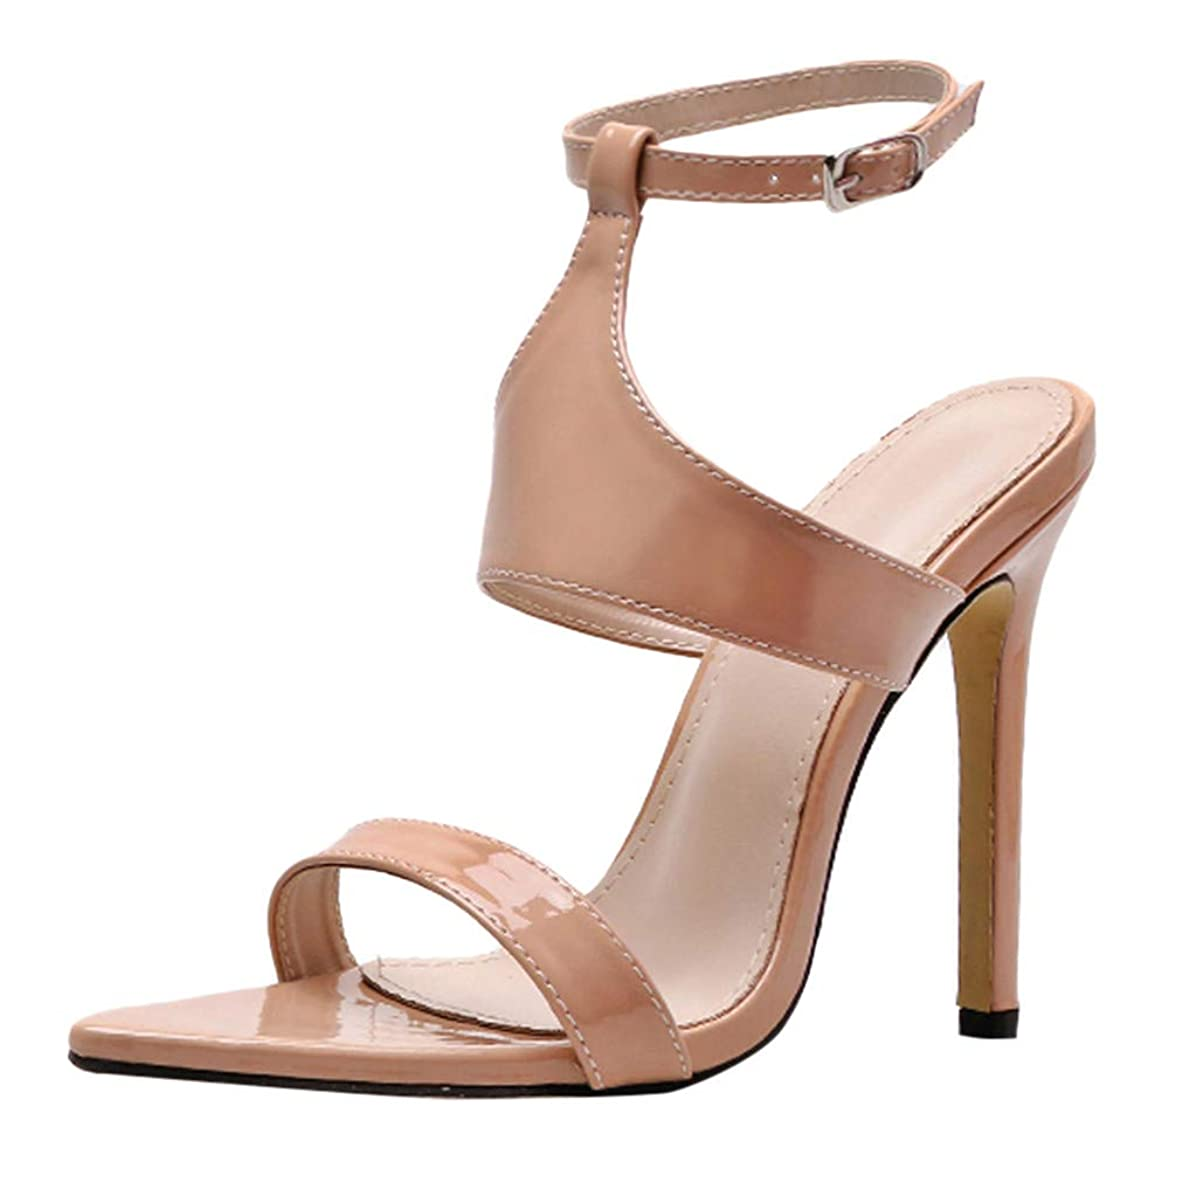 Tantisy ??? Women's Heeled Sandals Ankle Strap High Heels 11CM Open Toe Point Toe Mid Heel Sandals Bridal Party Shoes